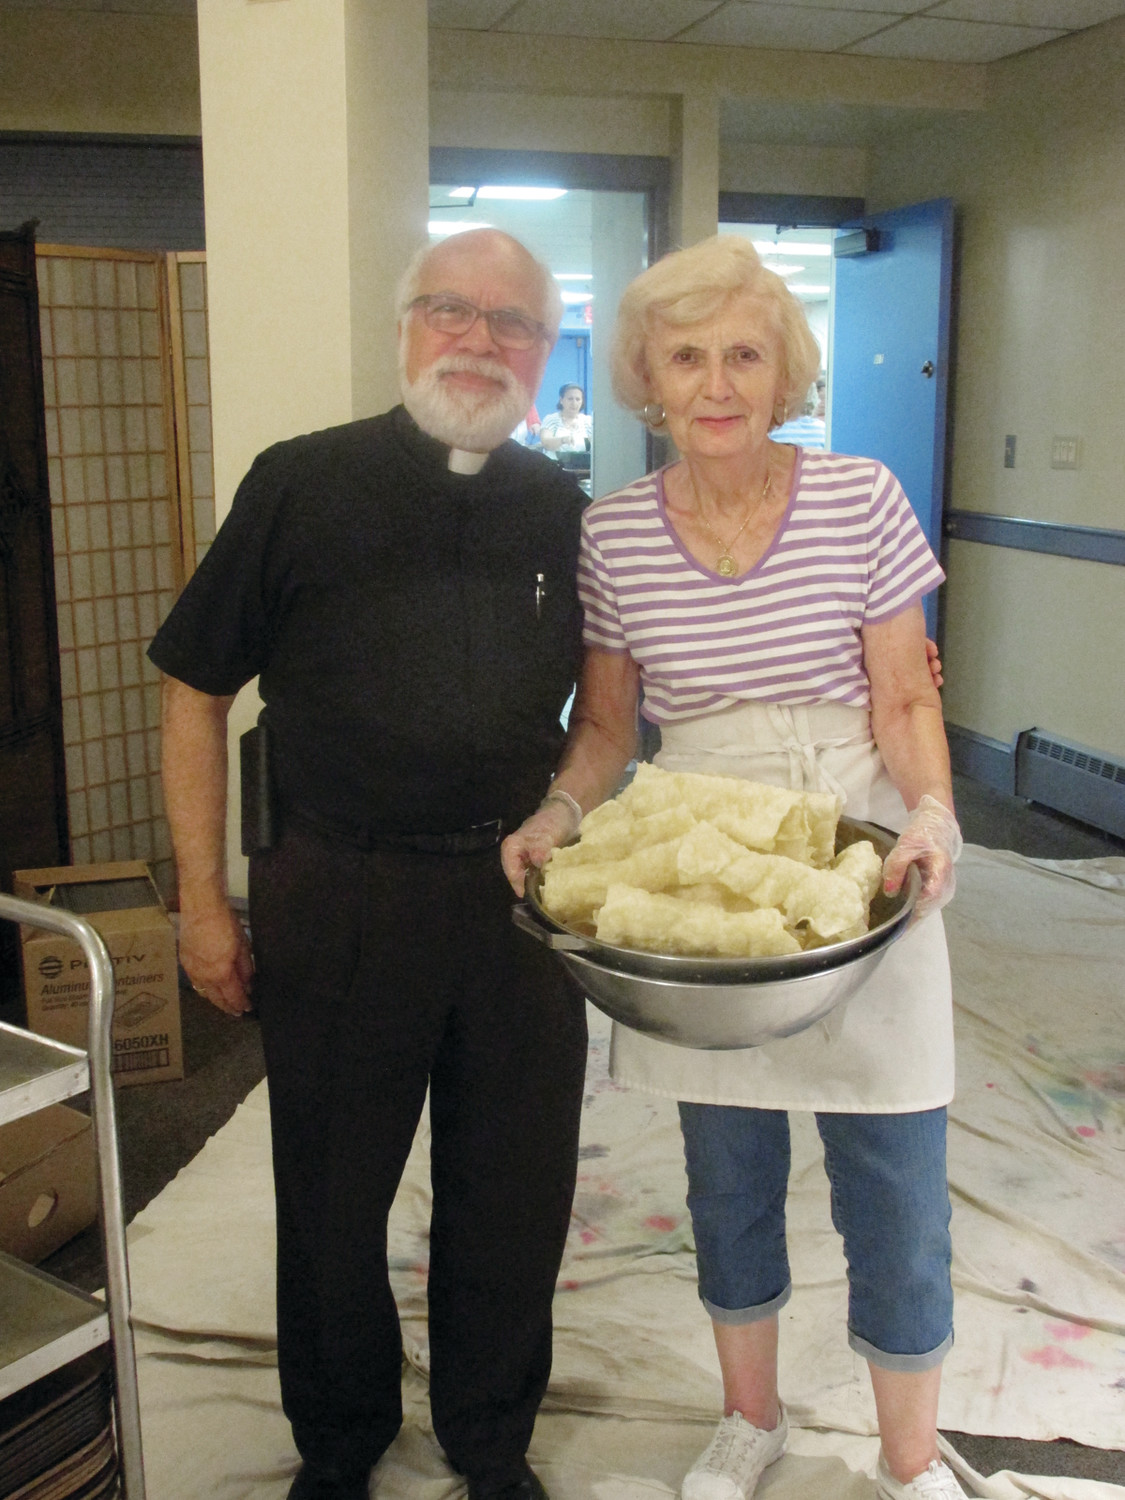 PROUD PAIR: Rev. Andrew George, pastor of Church of the Annunciation in Cranston, joins baking volunteer Melia Moschou who is carrying a full container of freshly made diples.